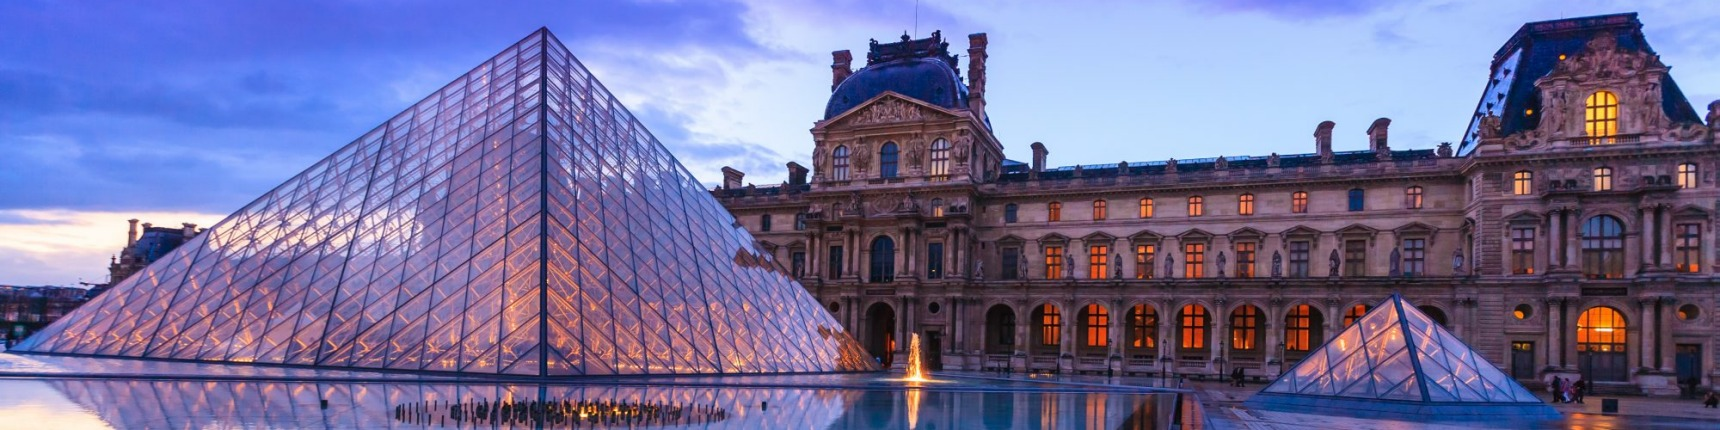 lourve paris france